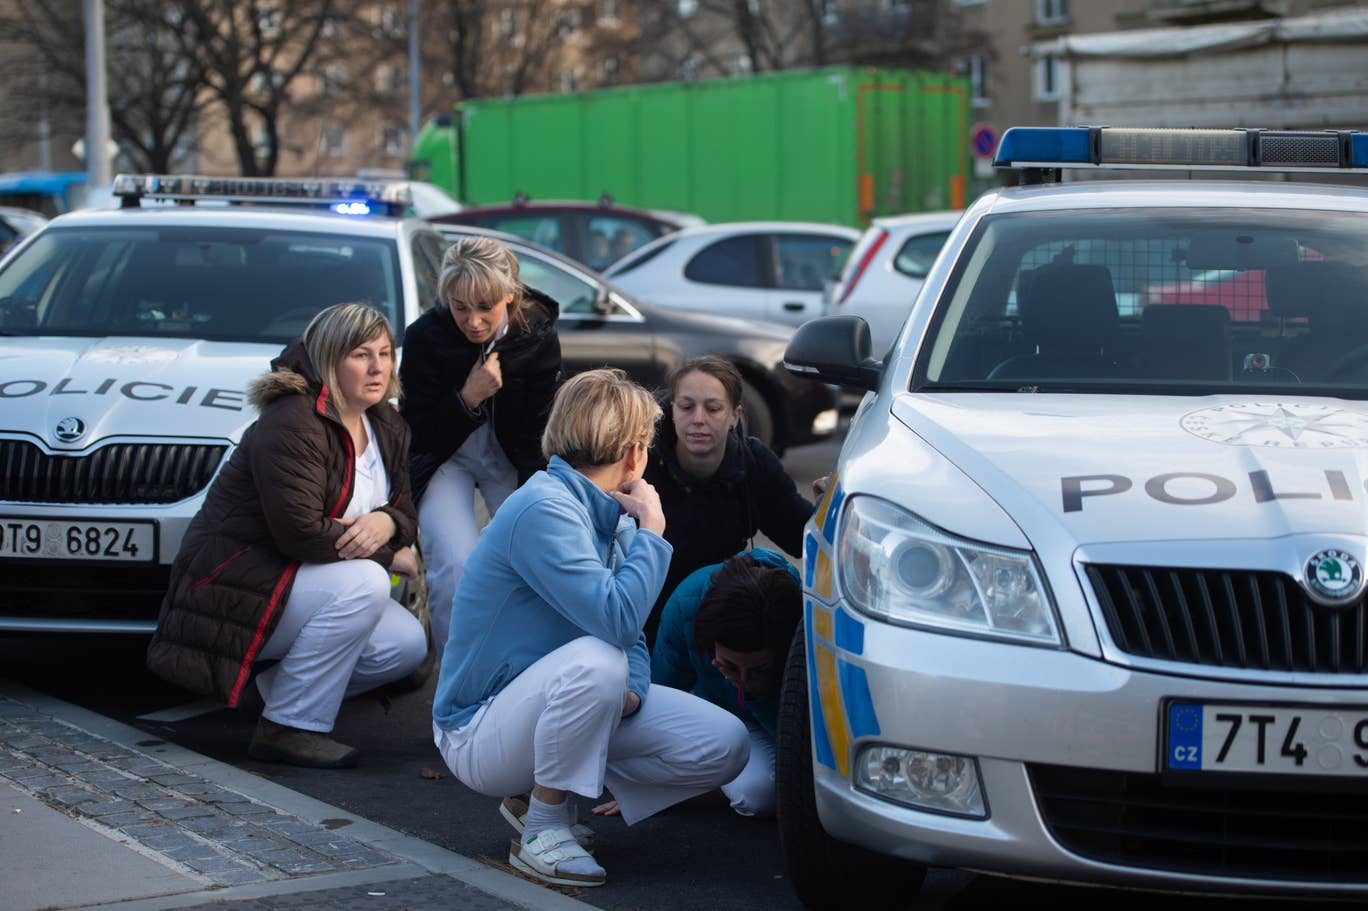 Six Killed in Czech Republic Hospital Shootout